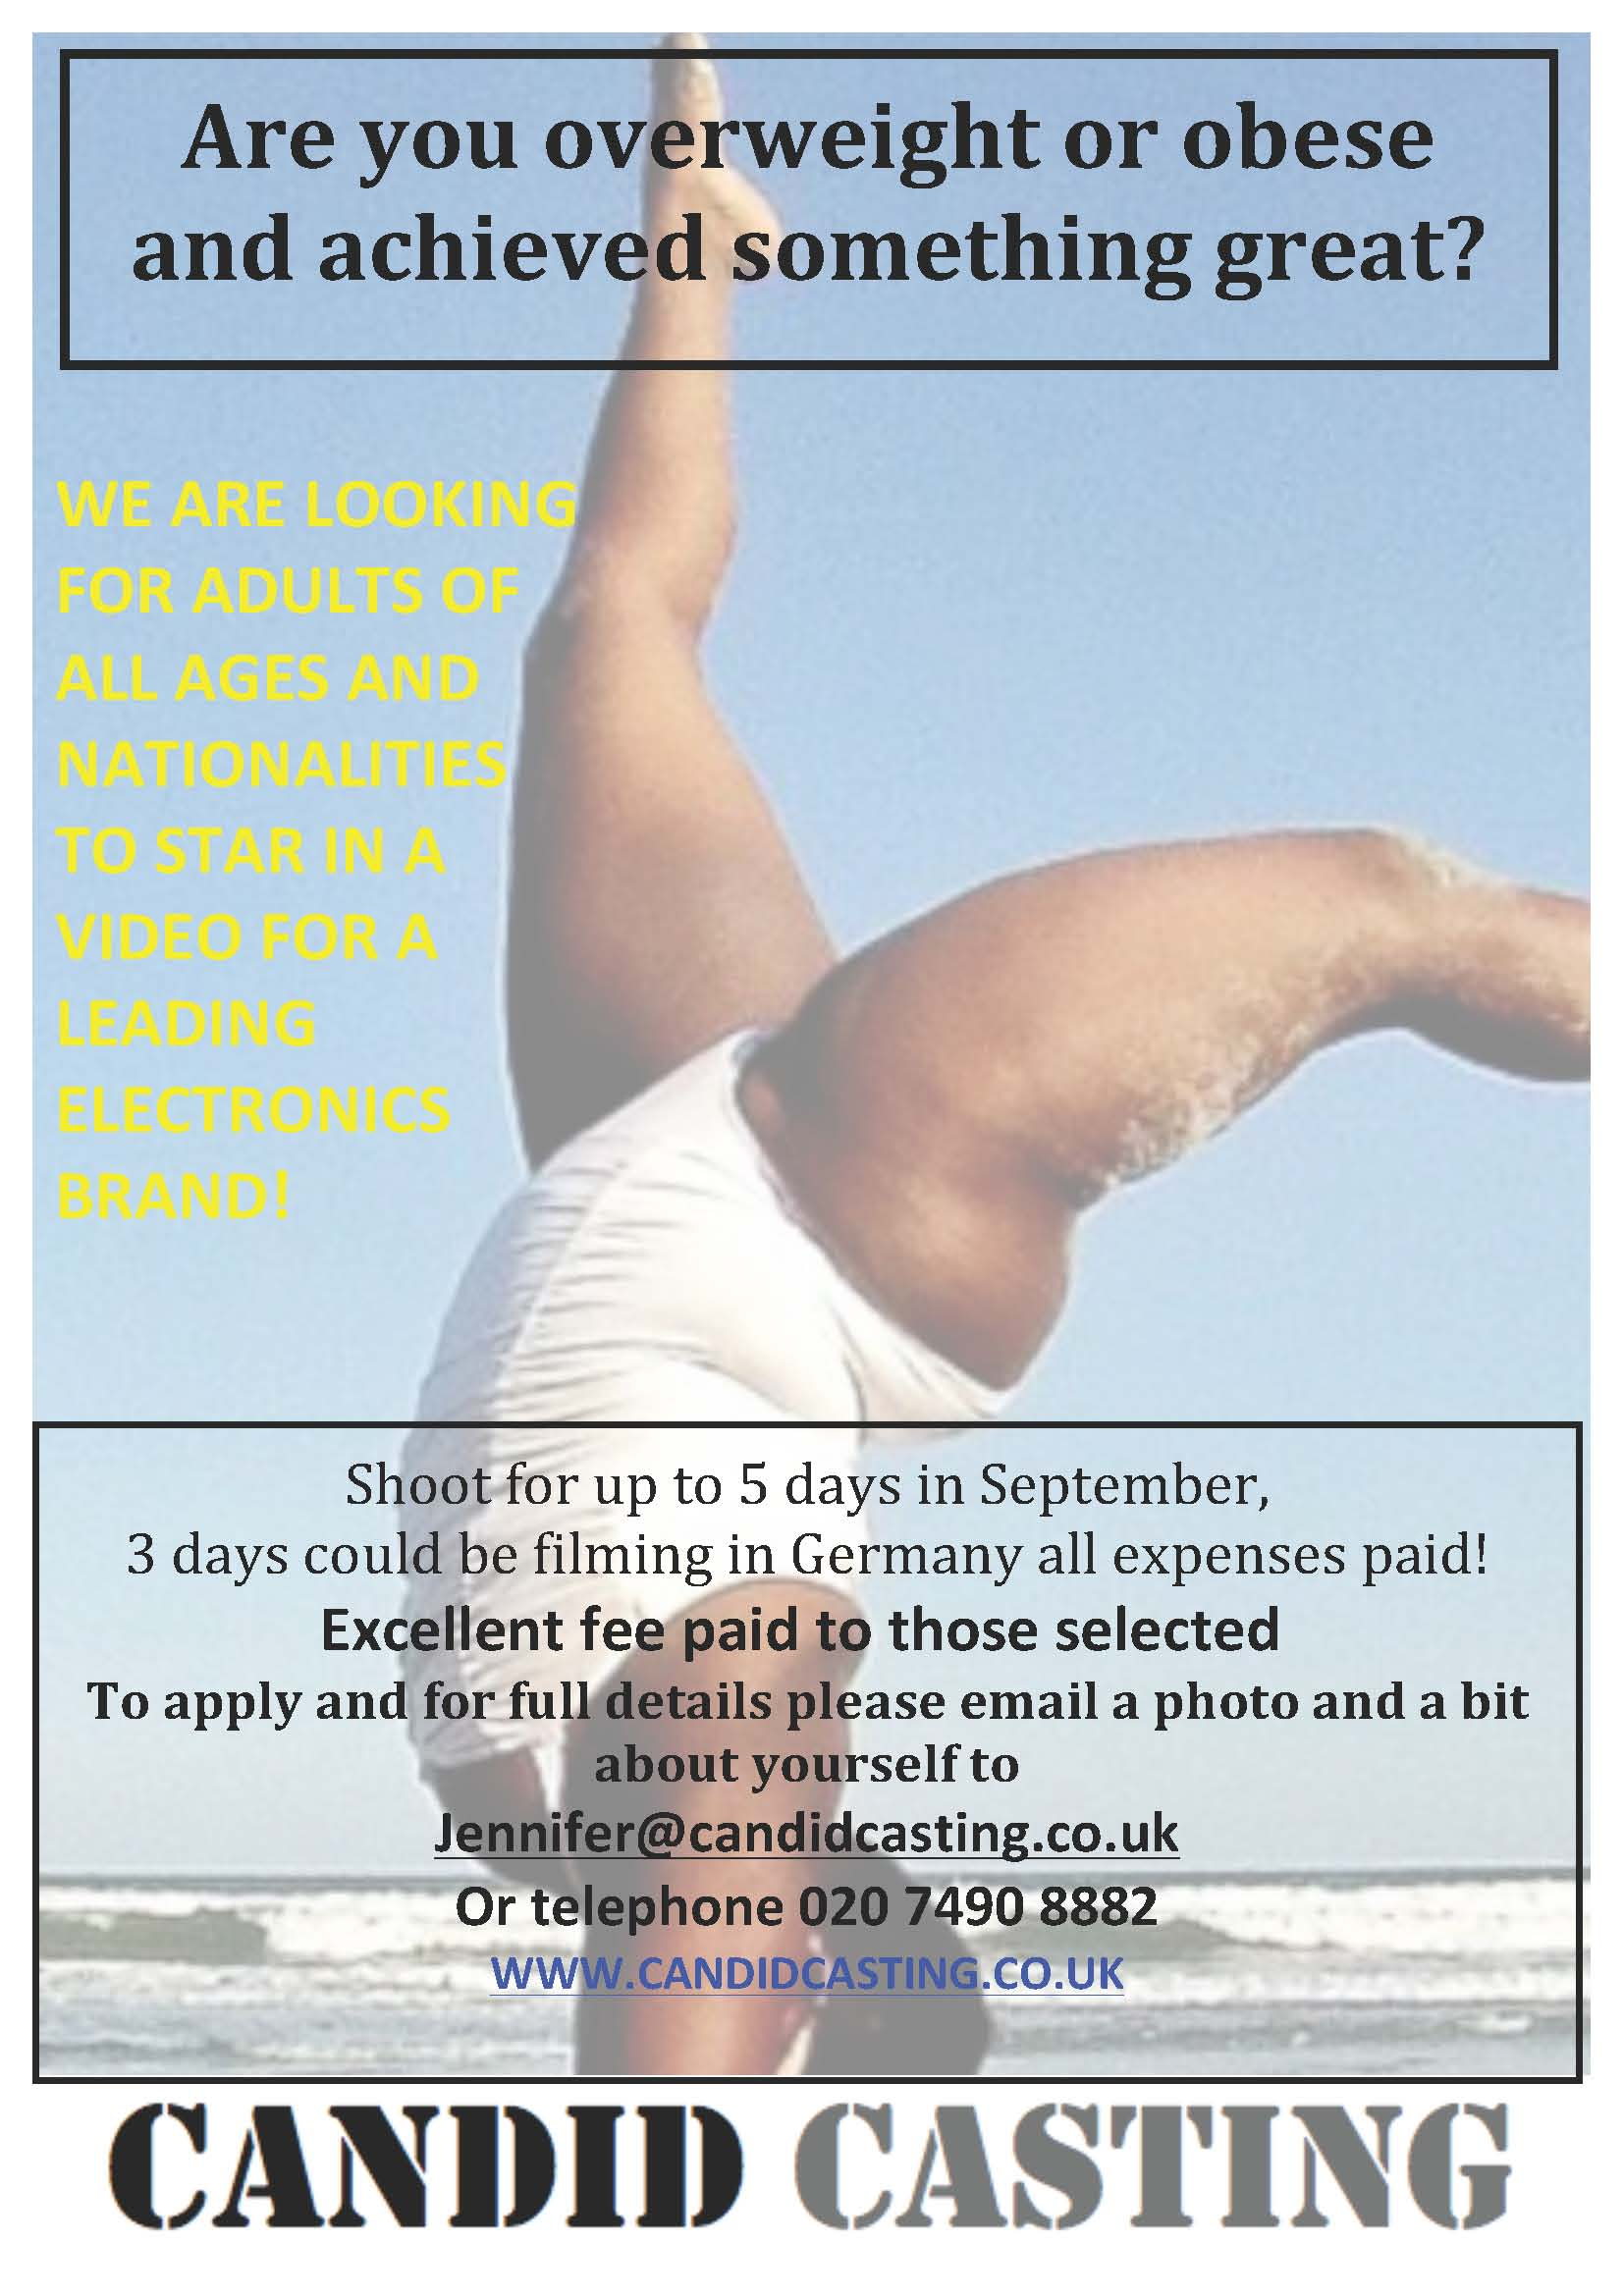 national obesity forum casting calls looking for obese adults to star in electronics video